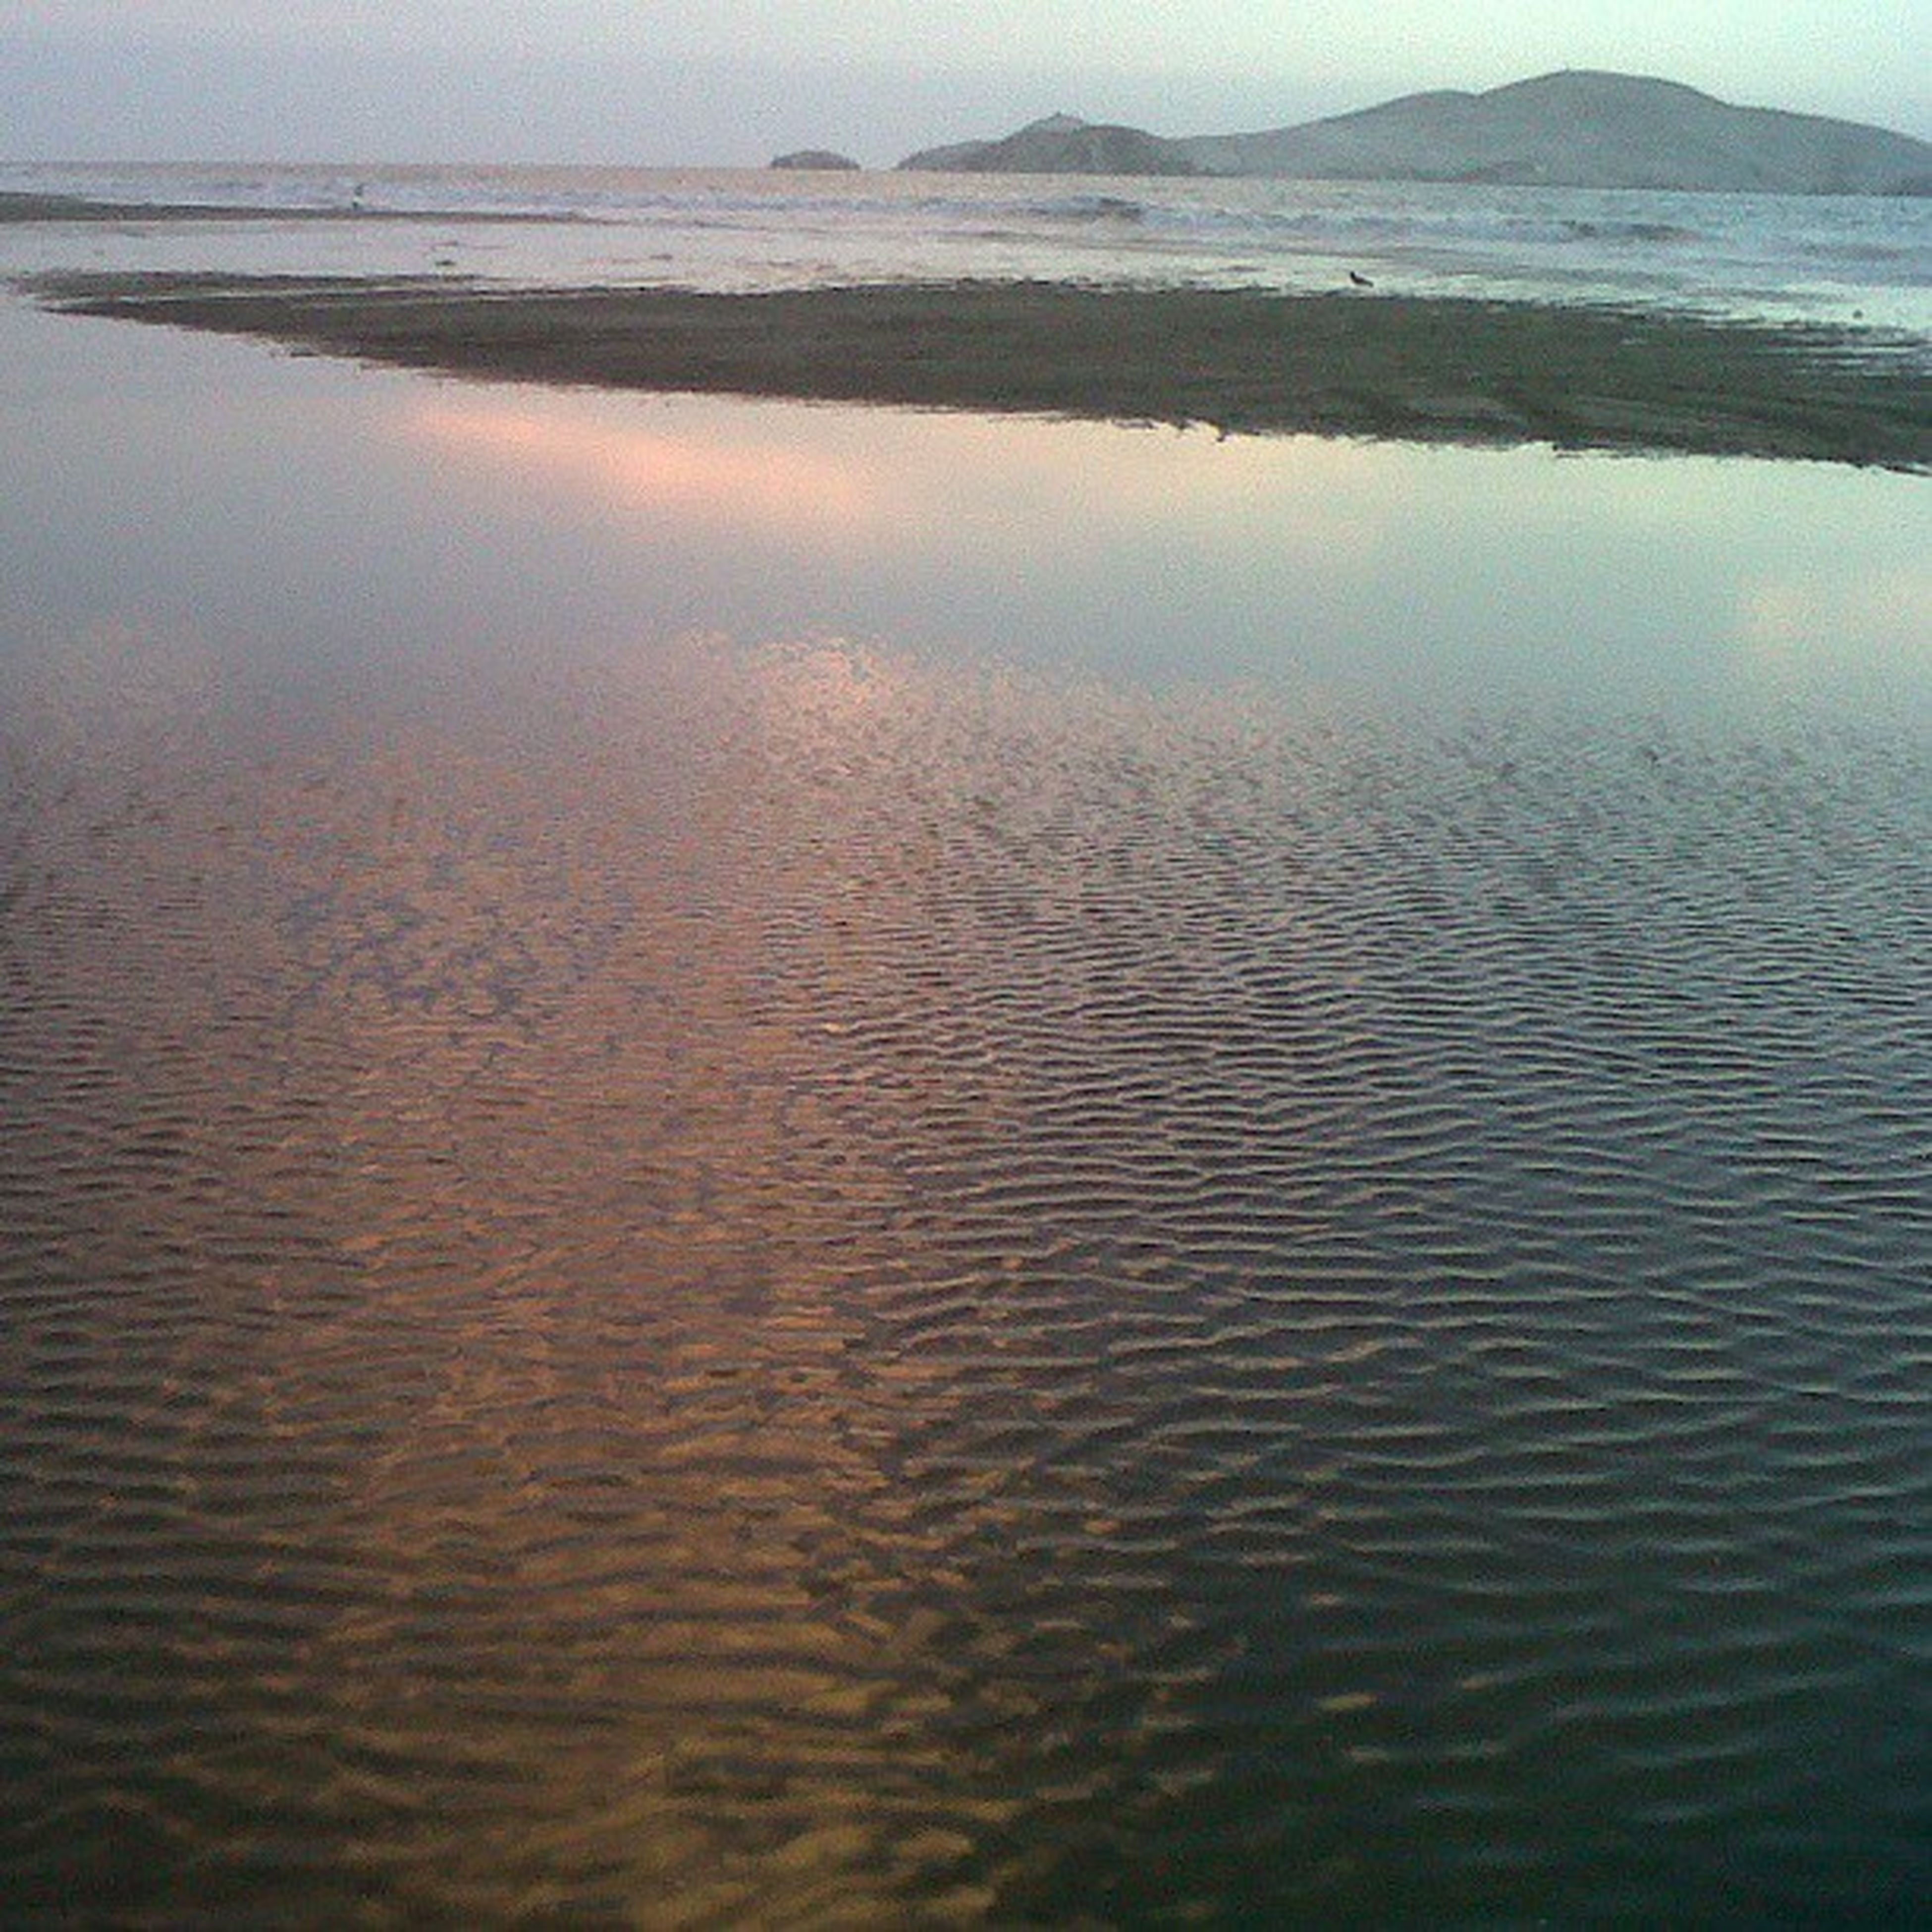 water, sea, tranquility, tranquil scene, beach, scenics, beauty in nature, rippled, nature, shore, sand, reflection, waterfront, idyllic, horizon over water, coastline, calm, high angle view, wave, seascape